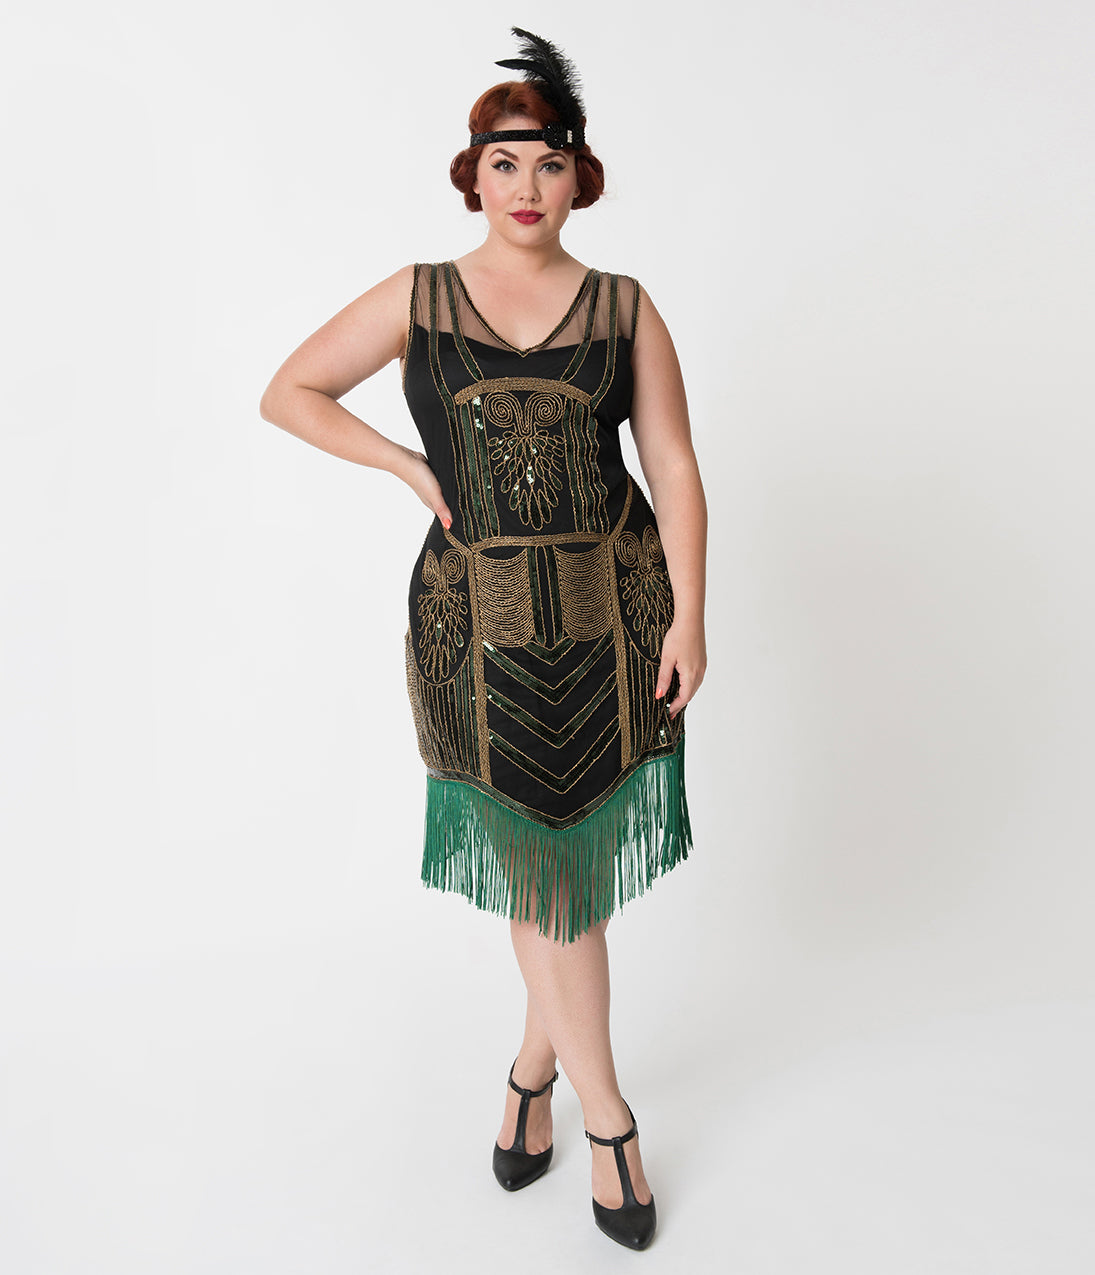 1920s Evening Dresses & Formal Gowns Unique Vintage Plus Size Black  Gold Beaded  Green Fringe Henriette Flapper Dress $33.00 AT vintagedancer.com